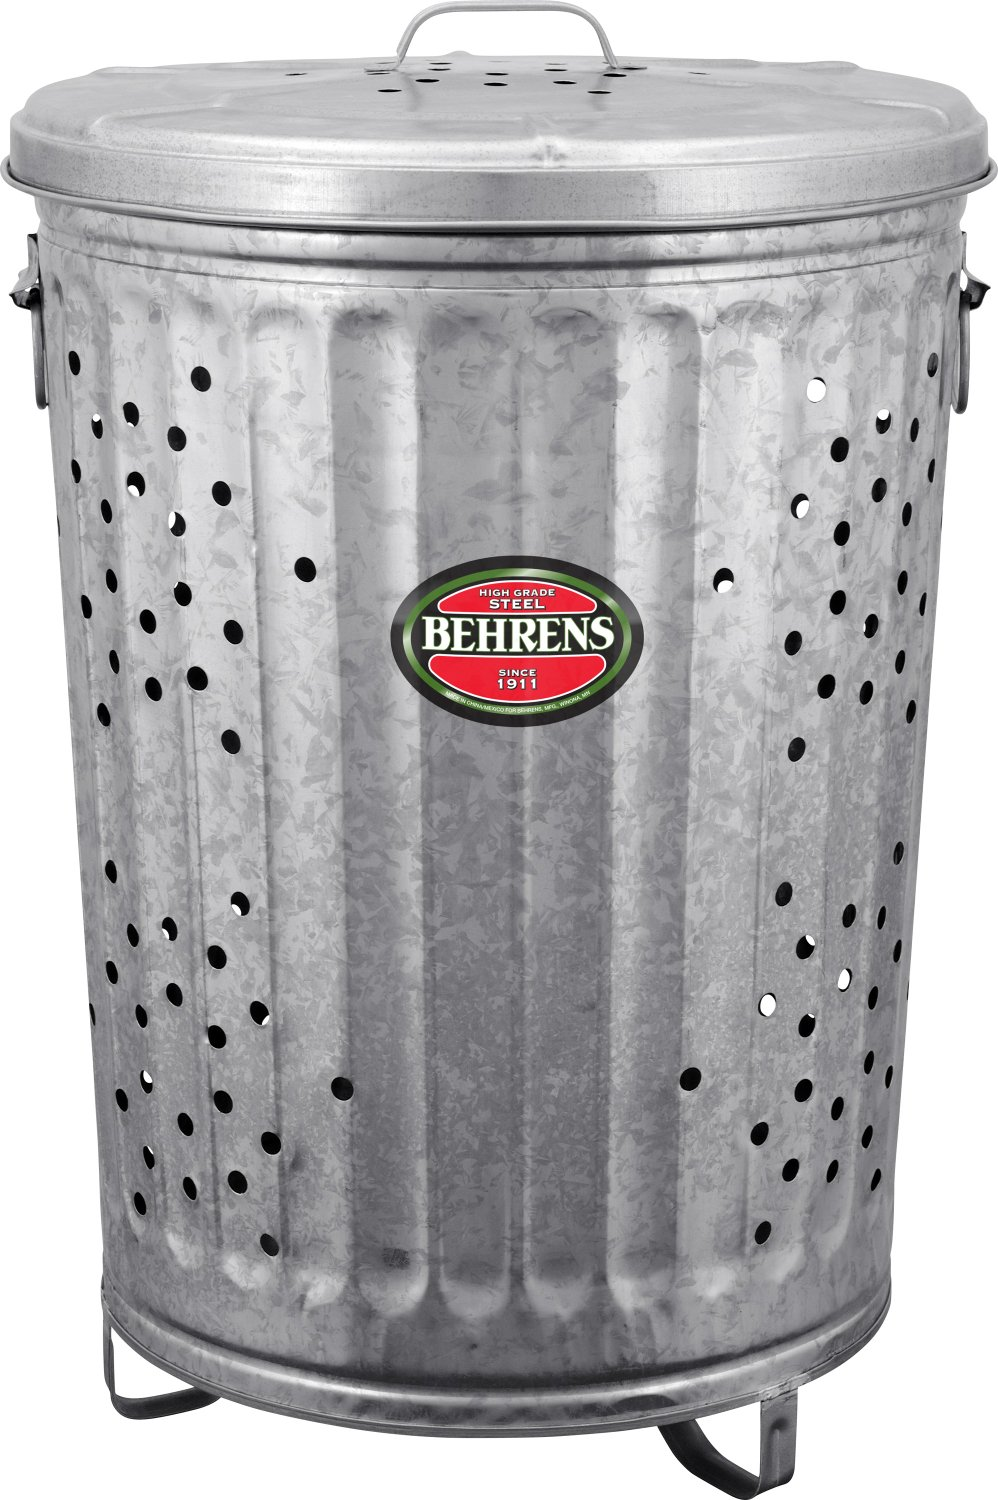 Behrens RB20 Trash Burner Composter with Cover, 20 Gallon